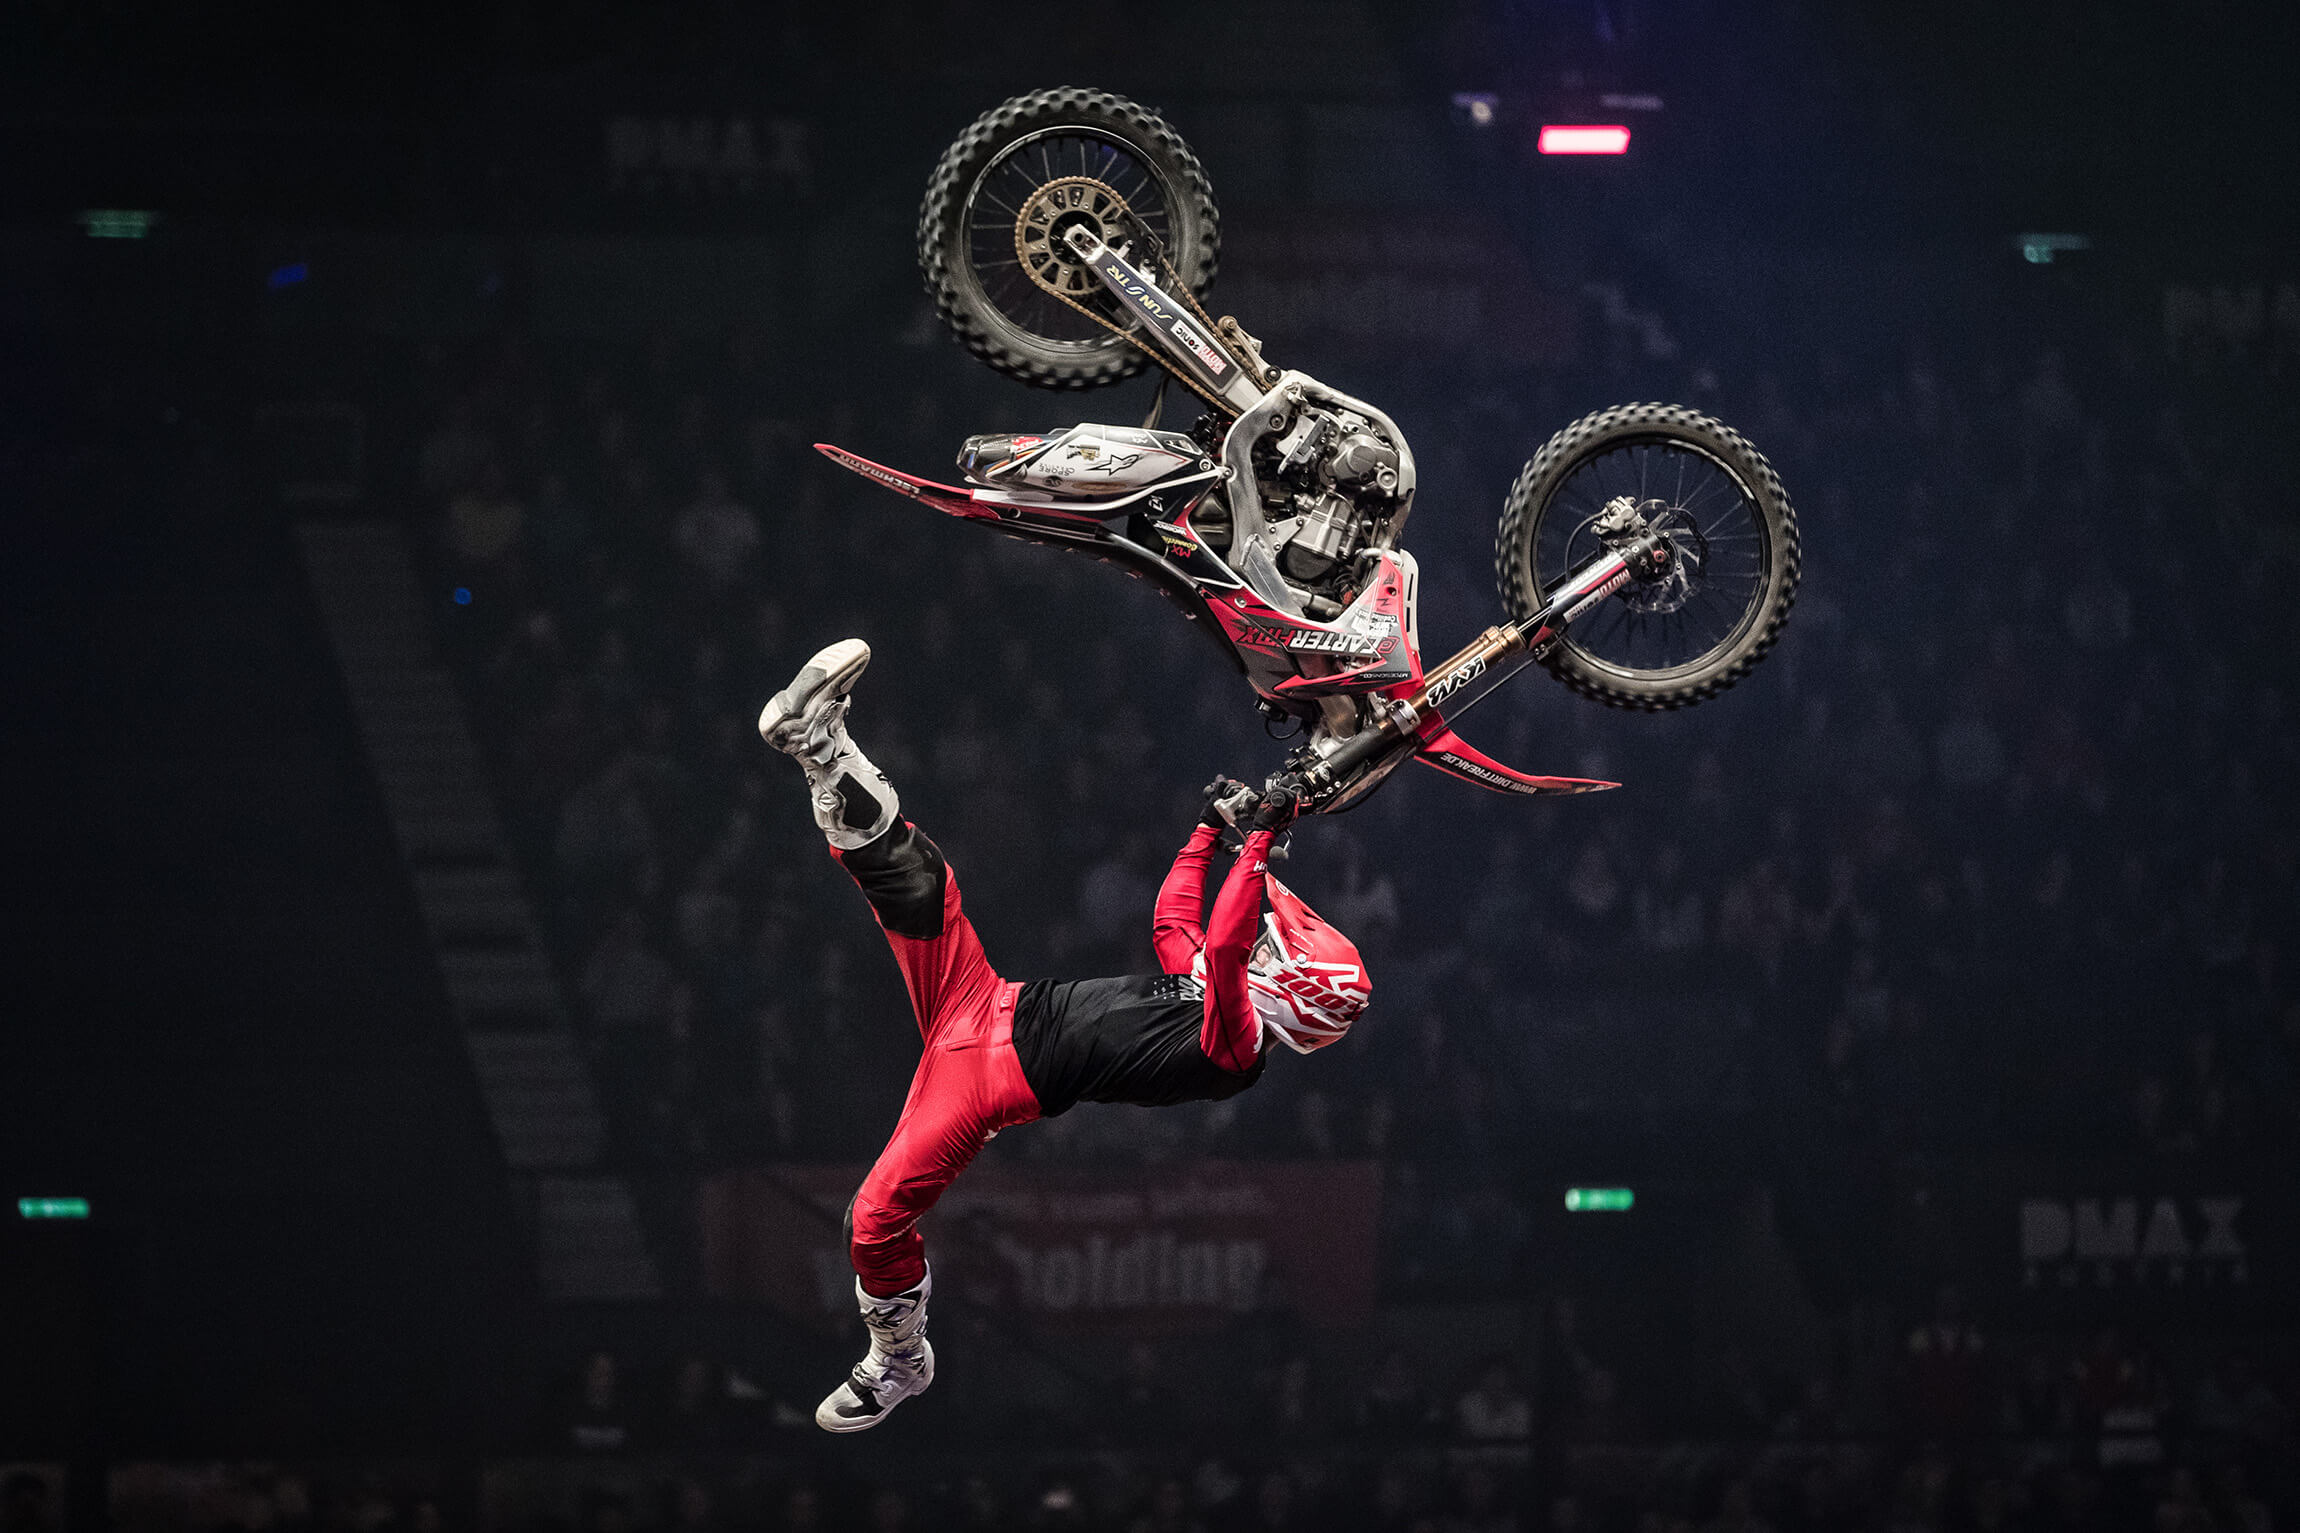 james carter fmx freestyle motocross masters of dirt flap photography philipp greindl